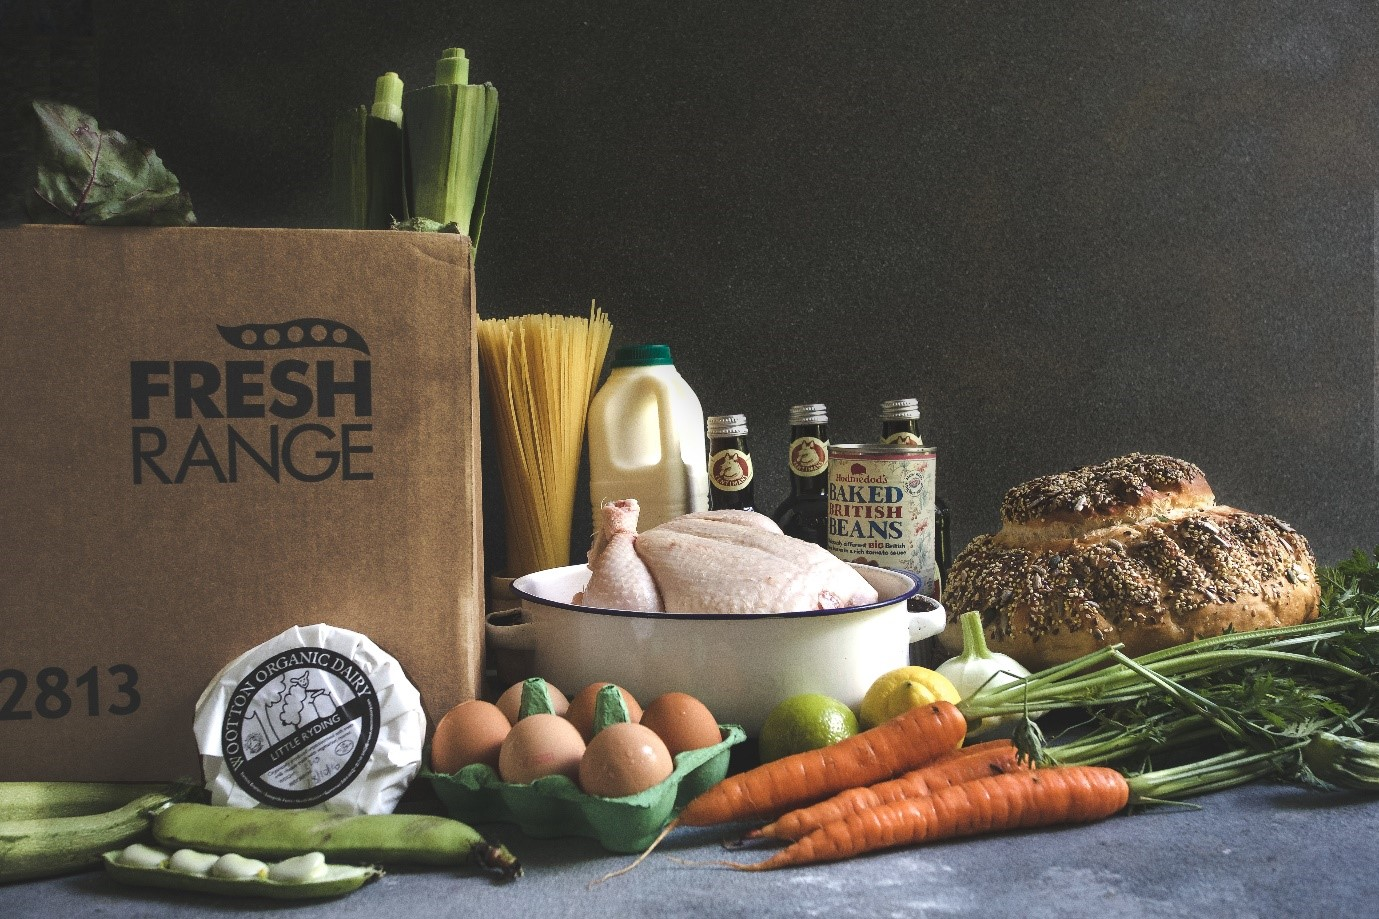 Fresh-range delivers fresher produce sourced with care to your door in South Bristol